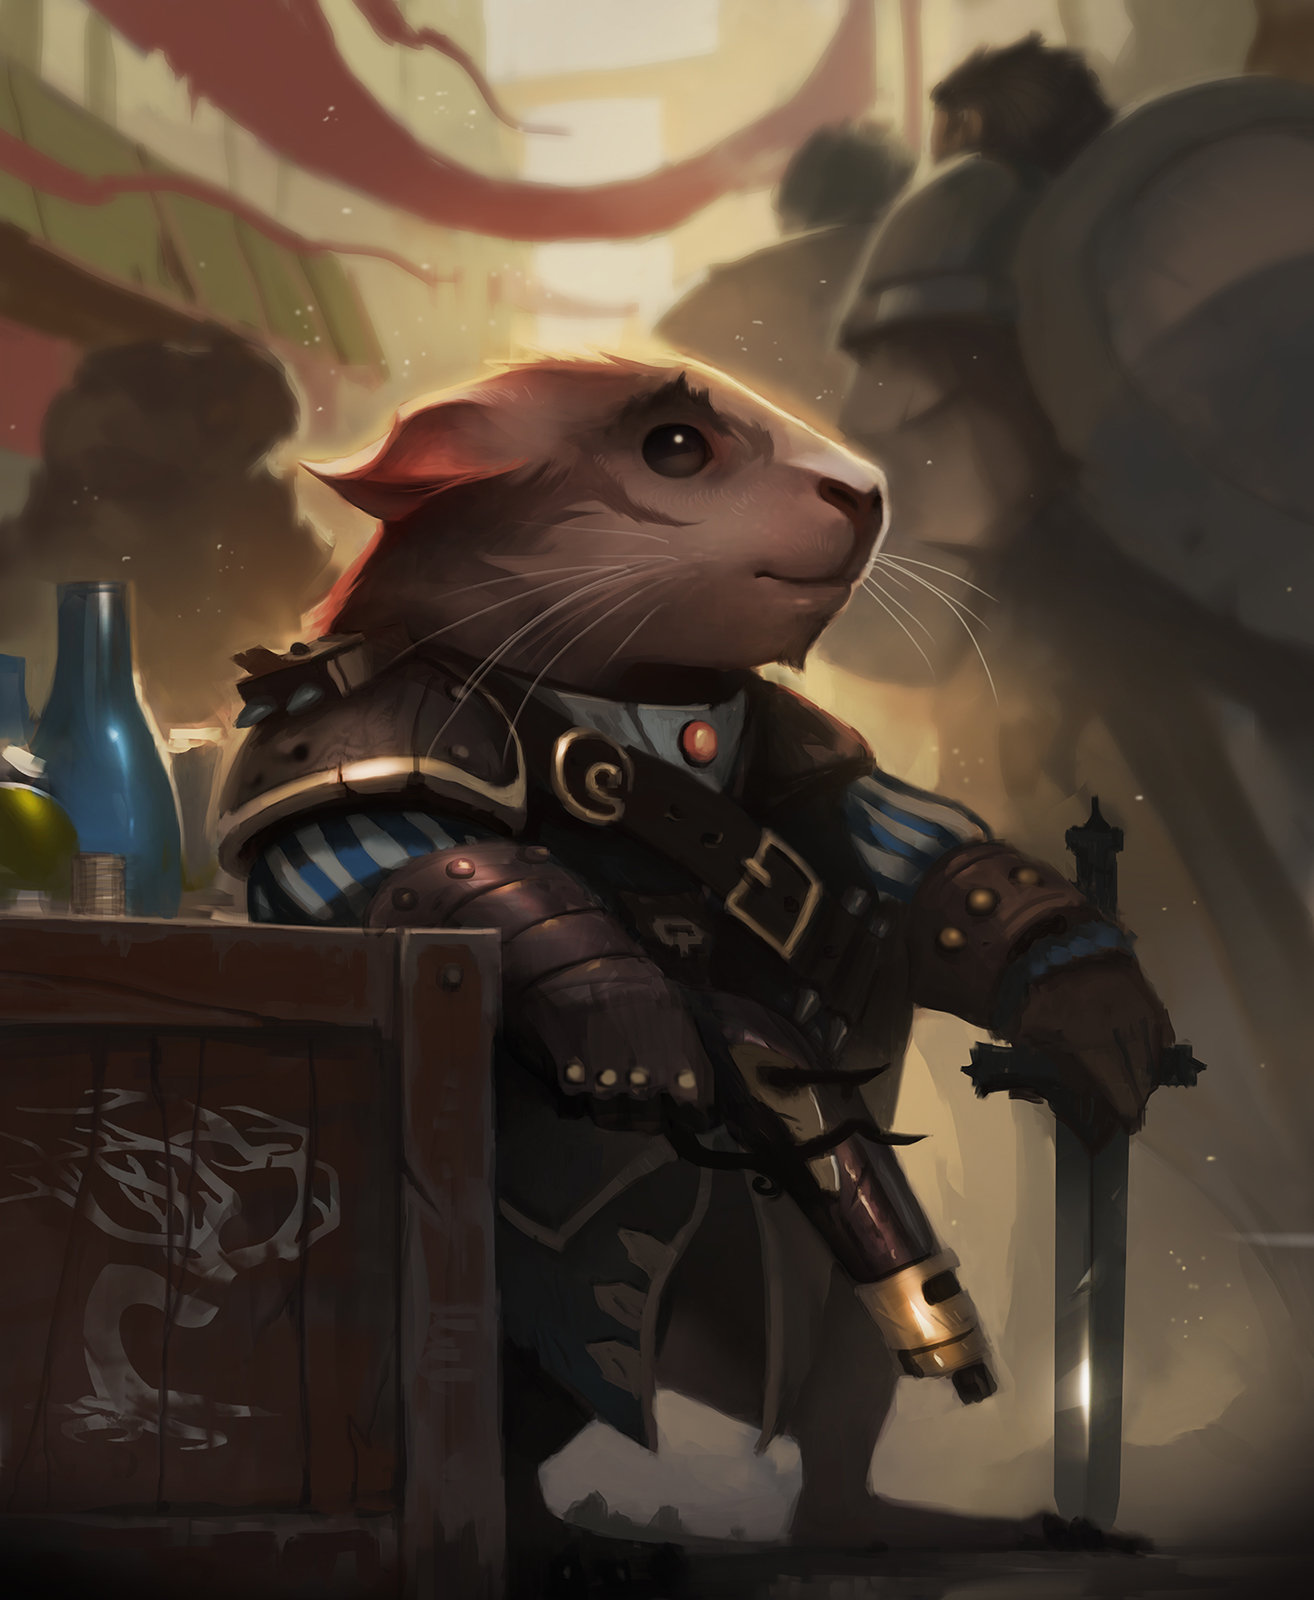 Dave Greco Digital Painting Crowfall The Guenician duelist hamster sword